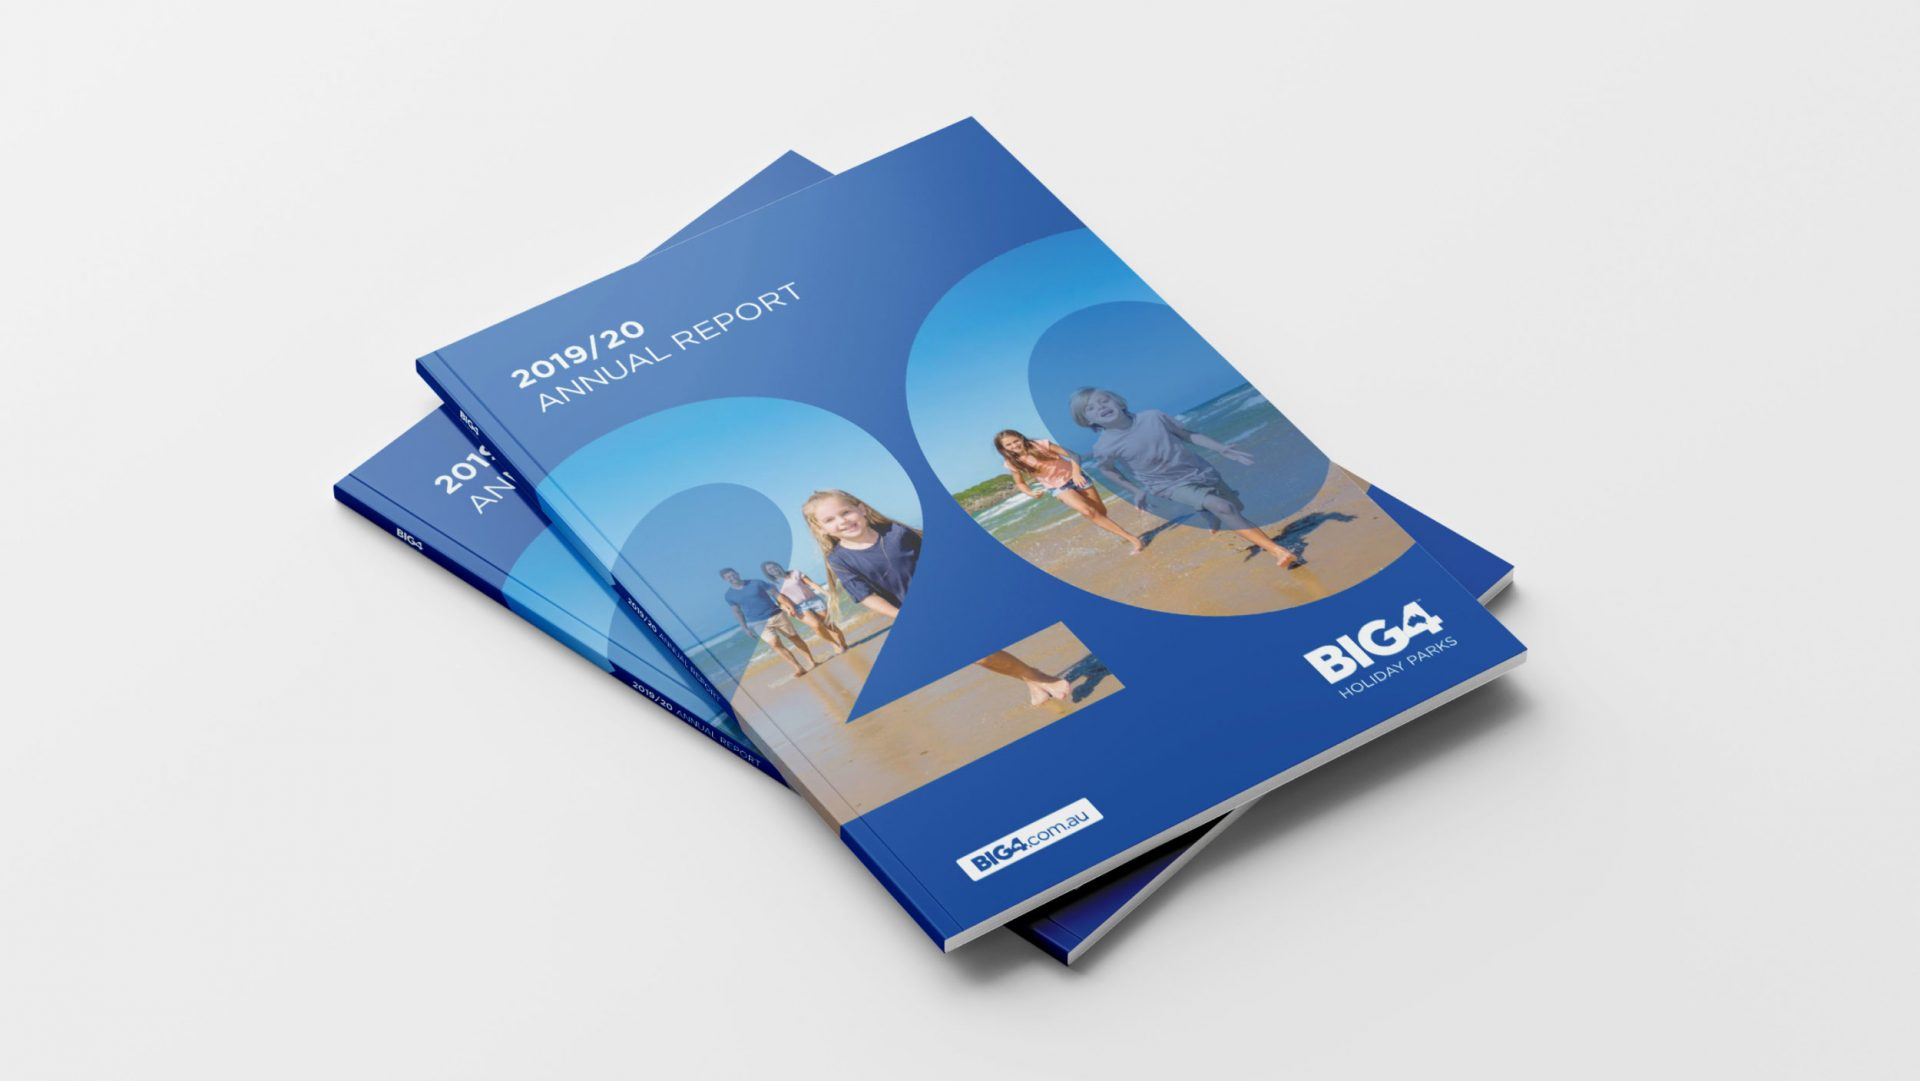 2019/20 Annual Report Cover for BIG4